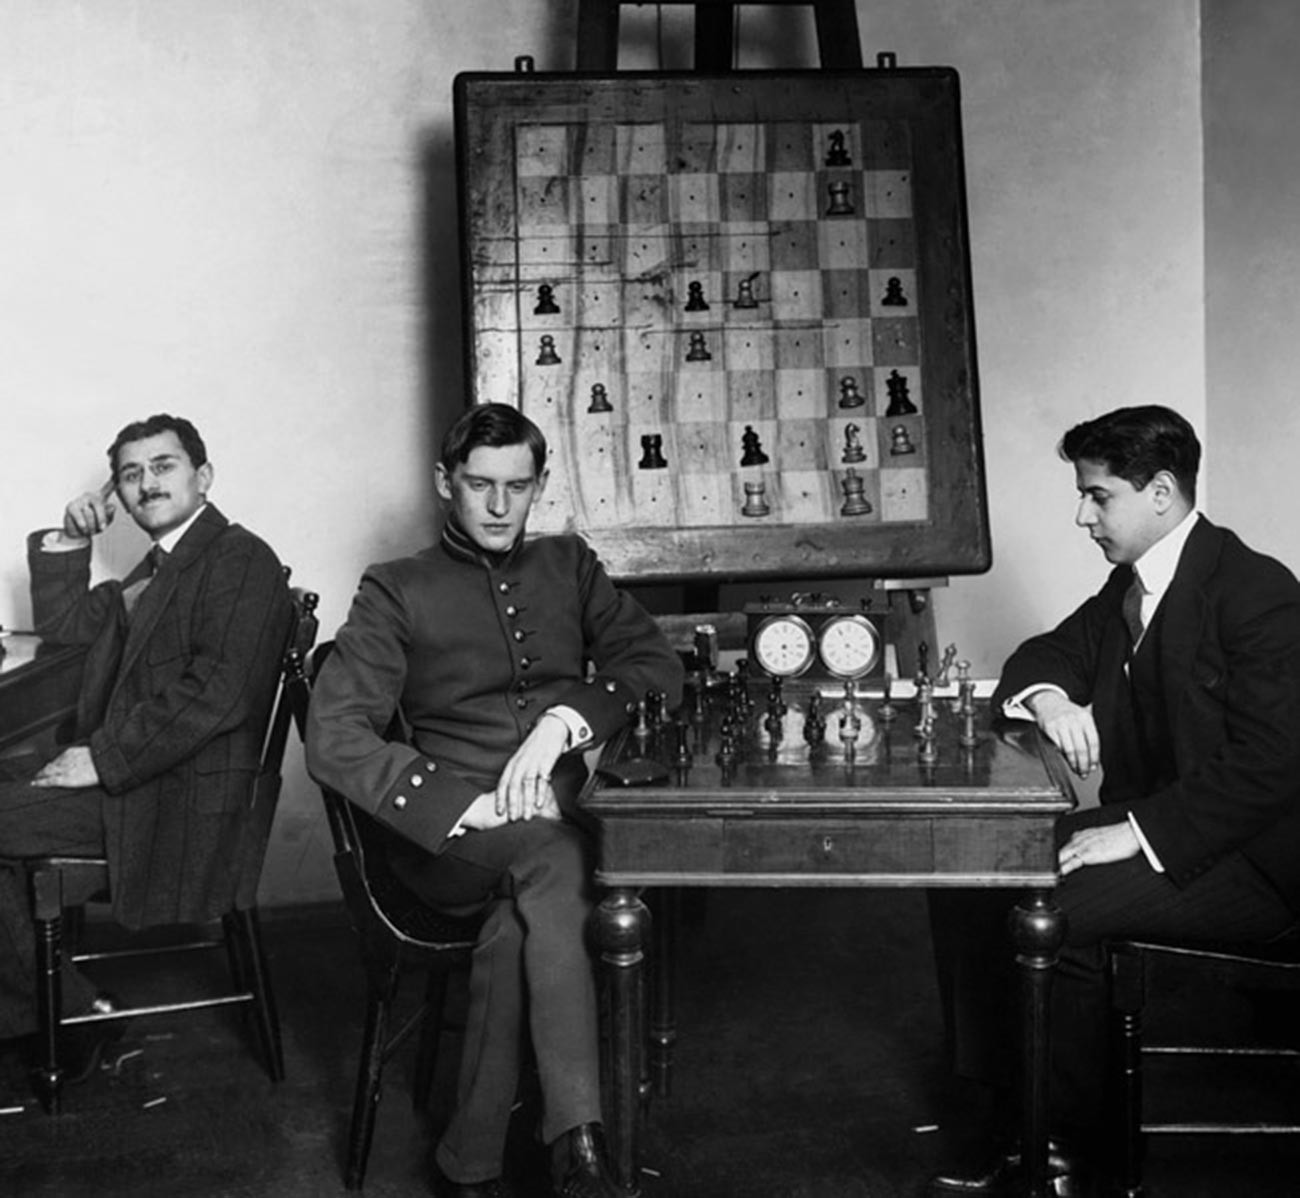 Alekhine vs Jose Raúl Capablanca, 1914.